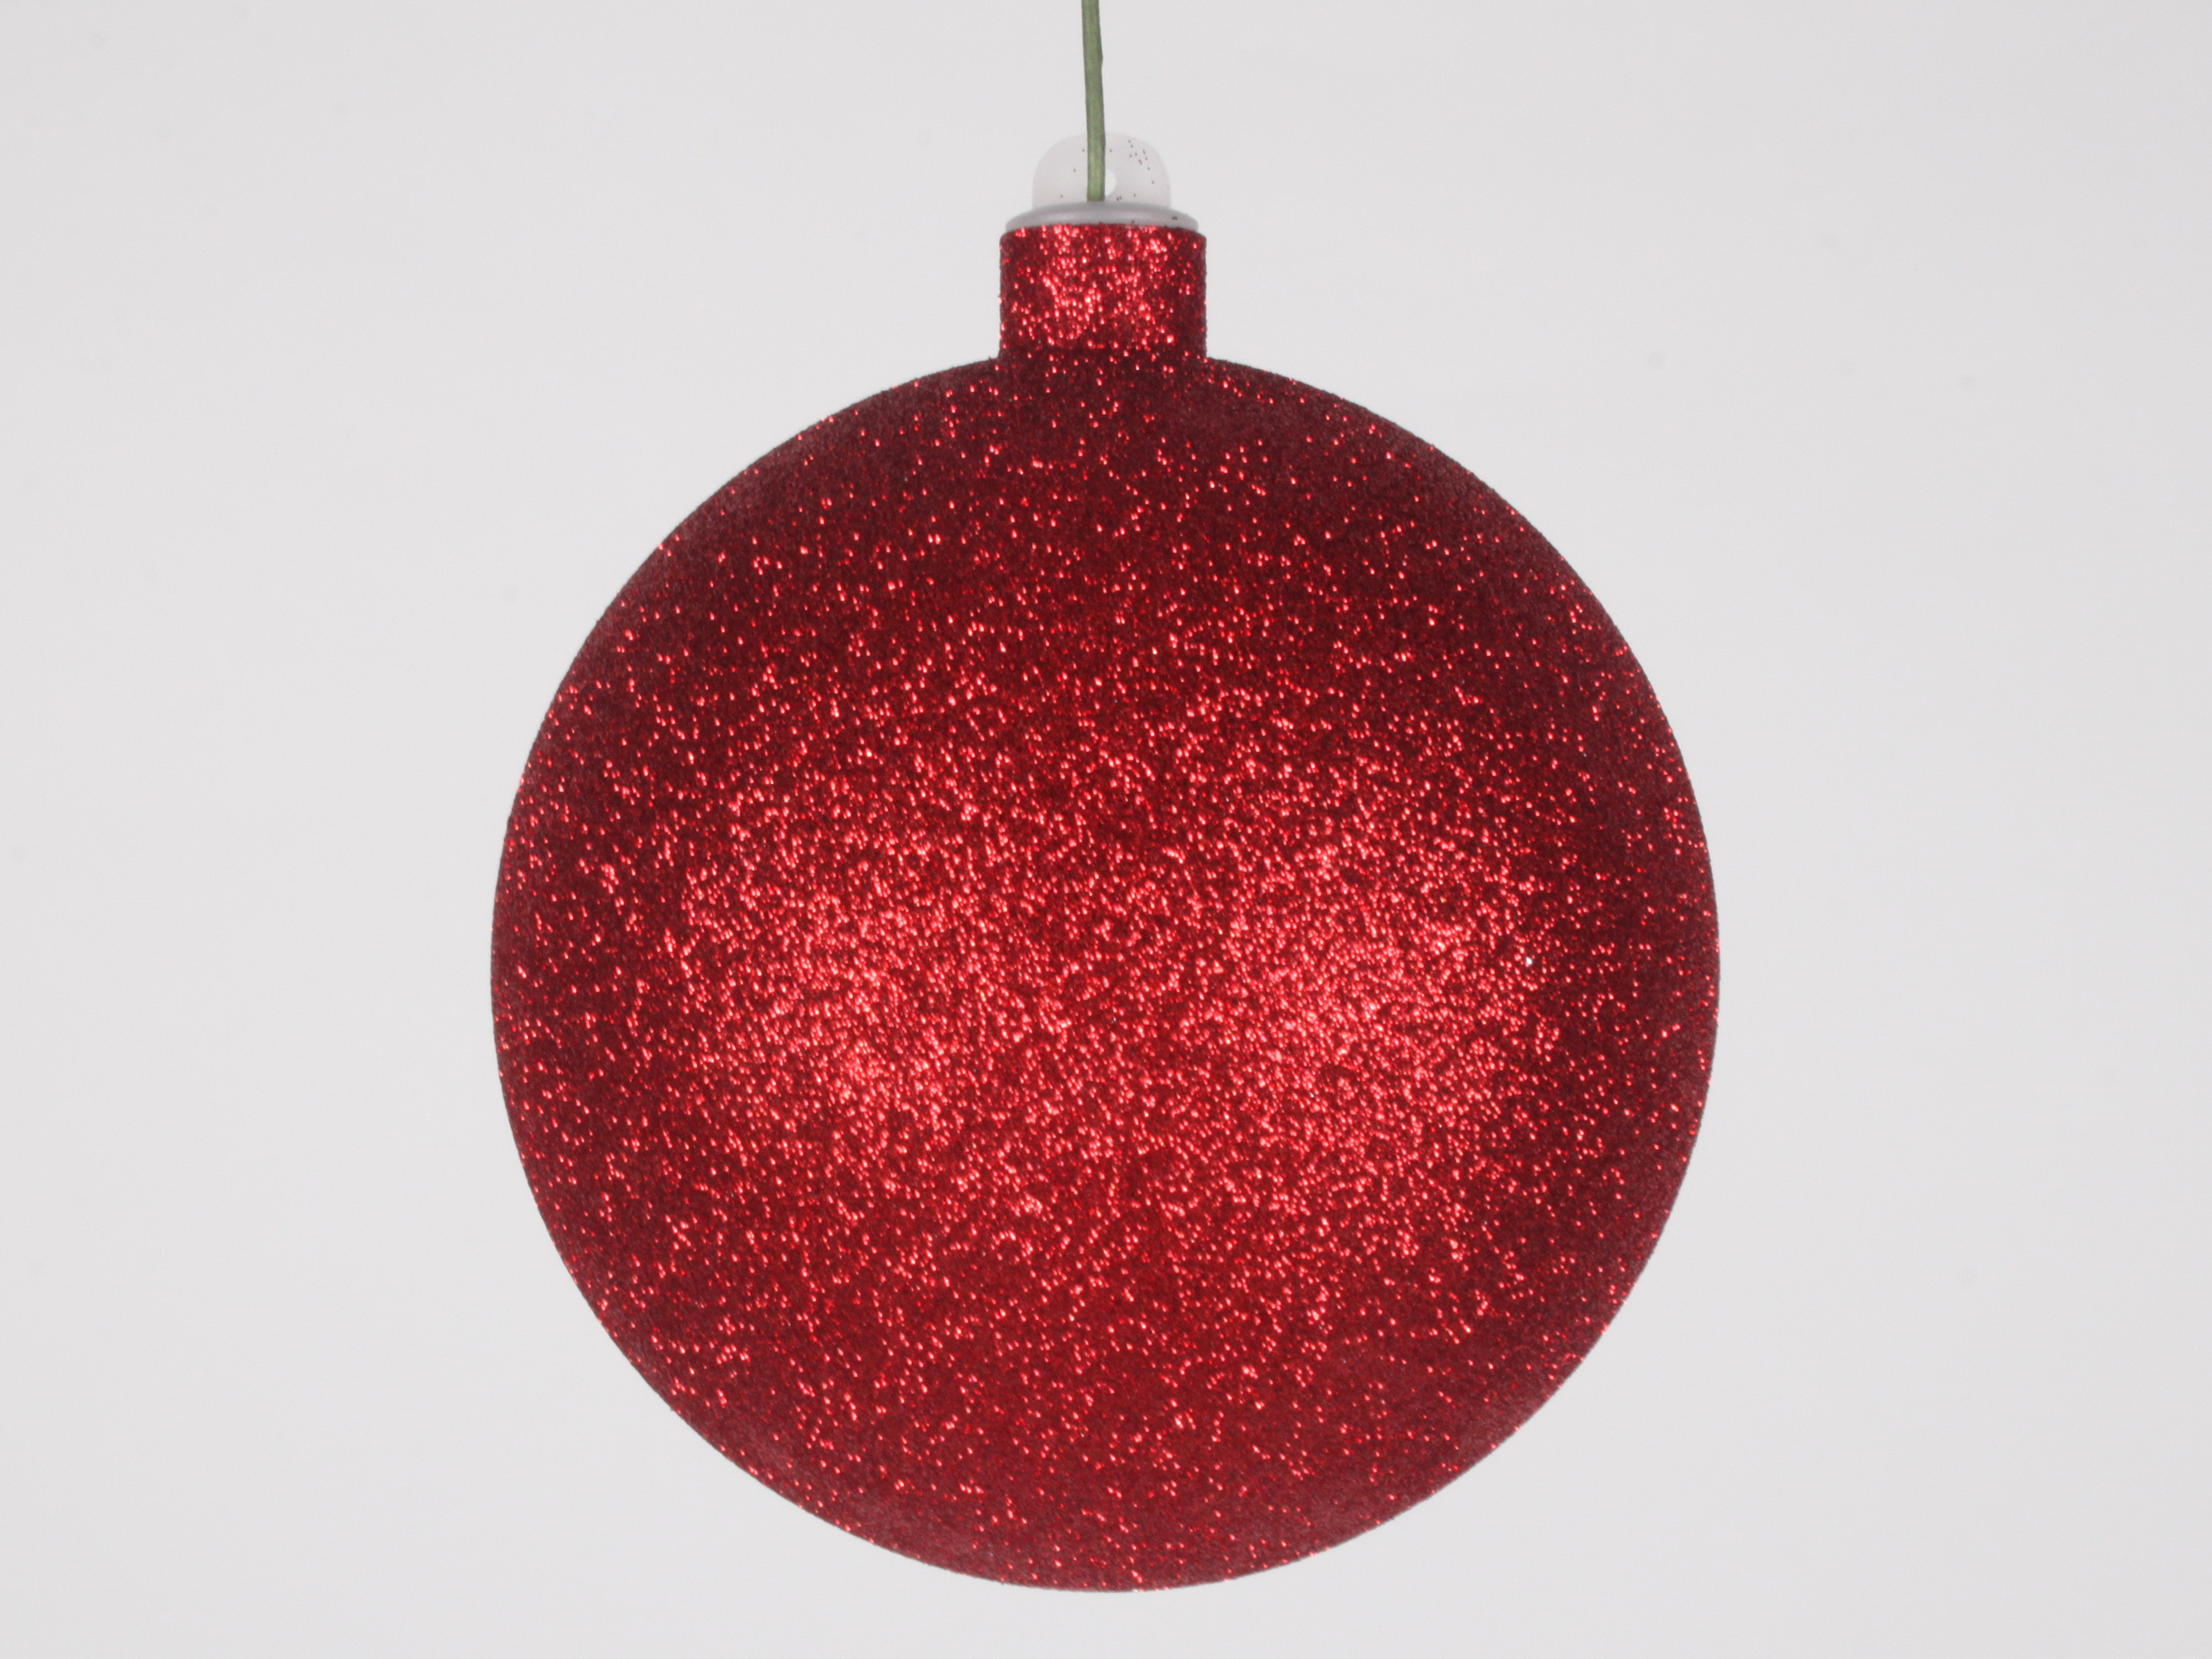 Red Christmas ornaments Elegant Winterland Inc Of Delightful 47 Photos Red Christmas ornaments